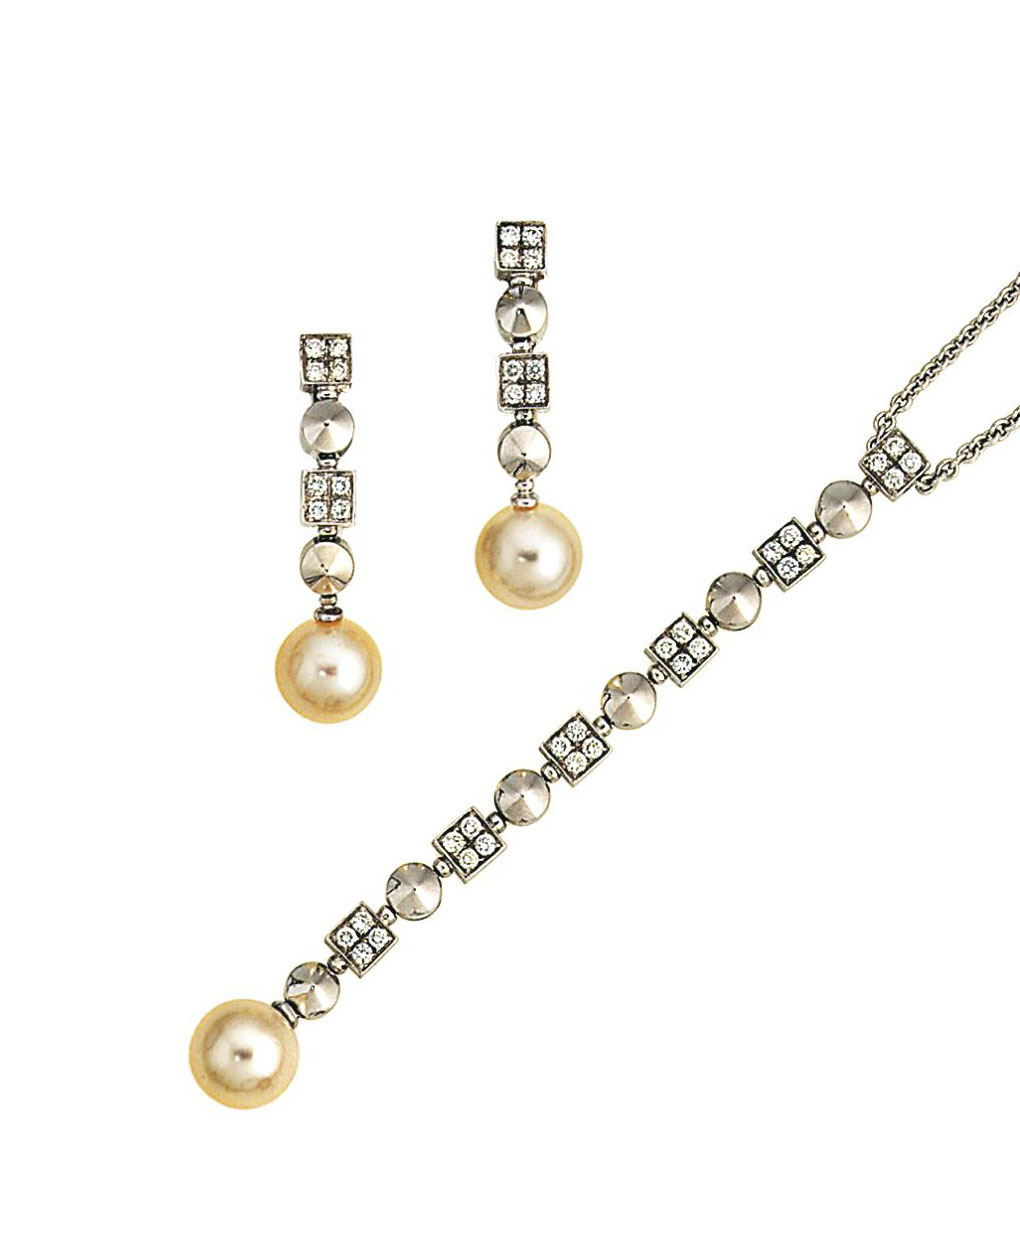 Bulgari Pearl Necklace: A Cultured Pearl And Diamond 'Lucea' Pair Of Earrings And